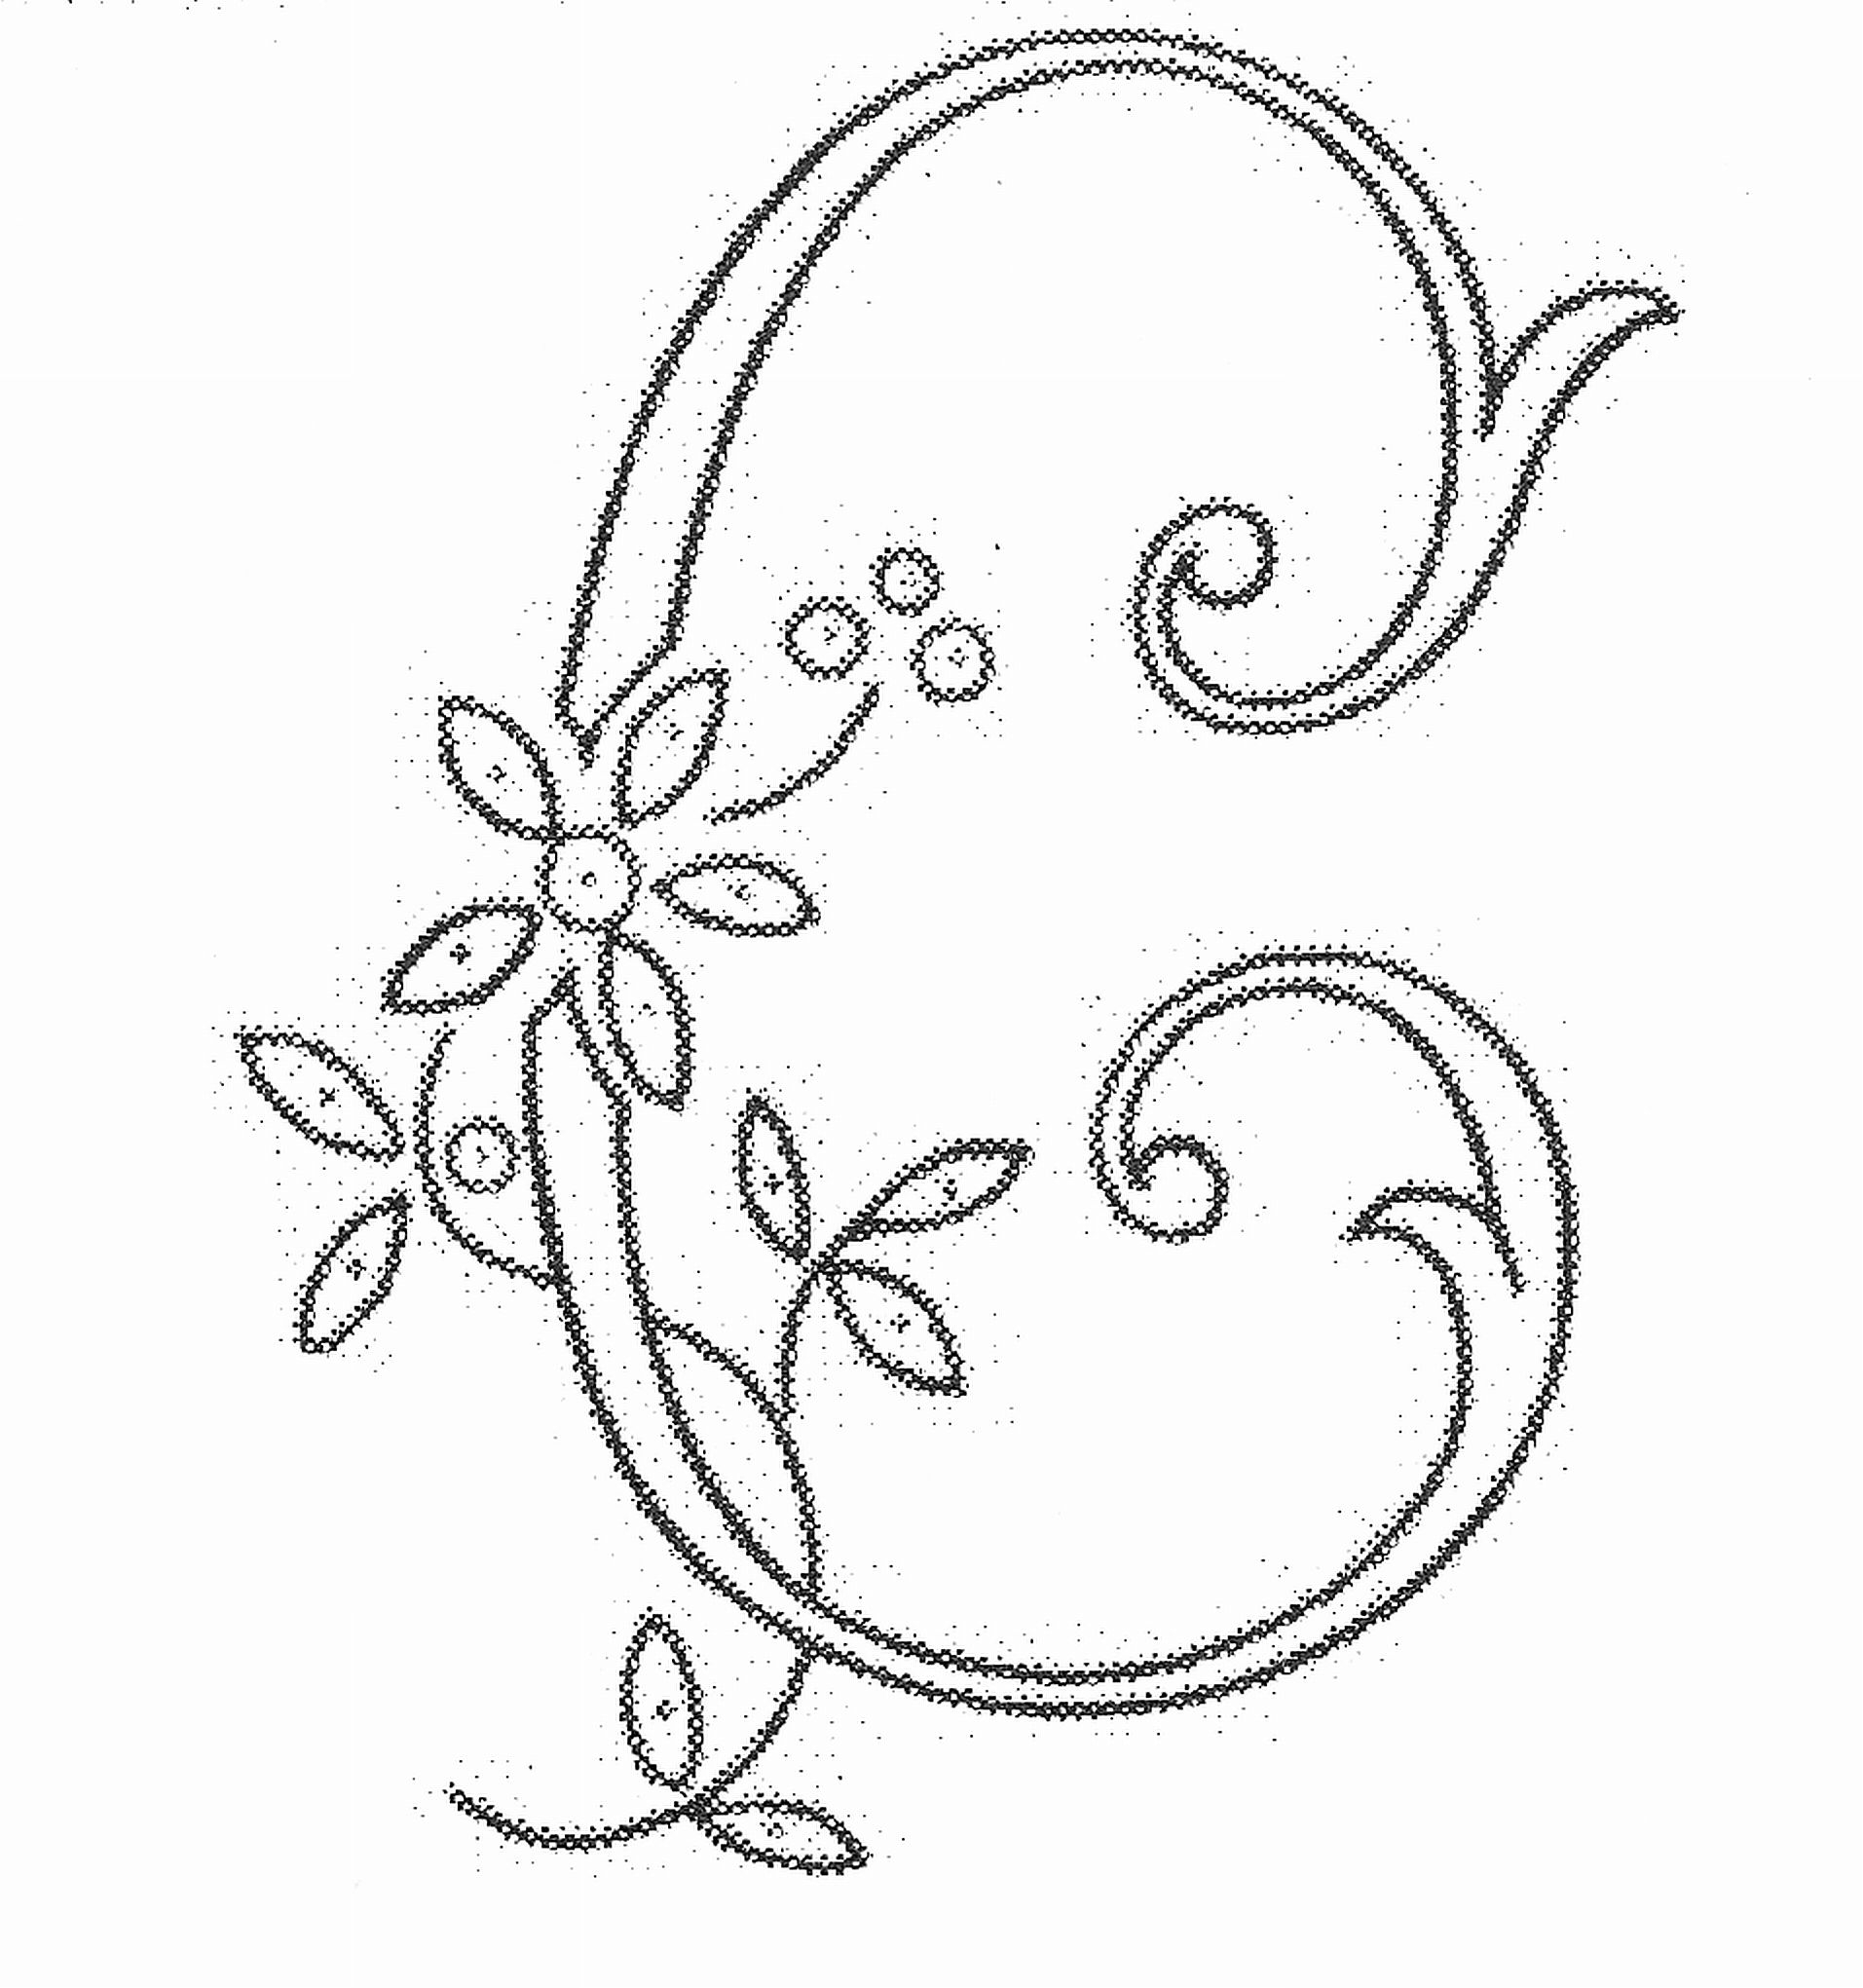 Embroidery Alphabet Patterns Fancy Alphabet Letters Drawing At Getdrawings Free For